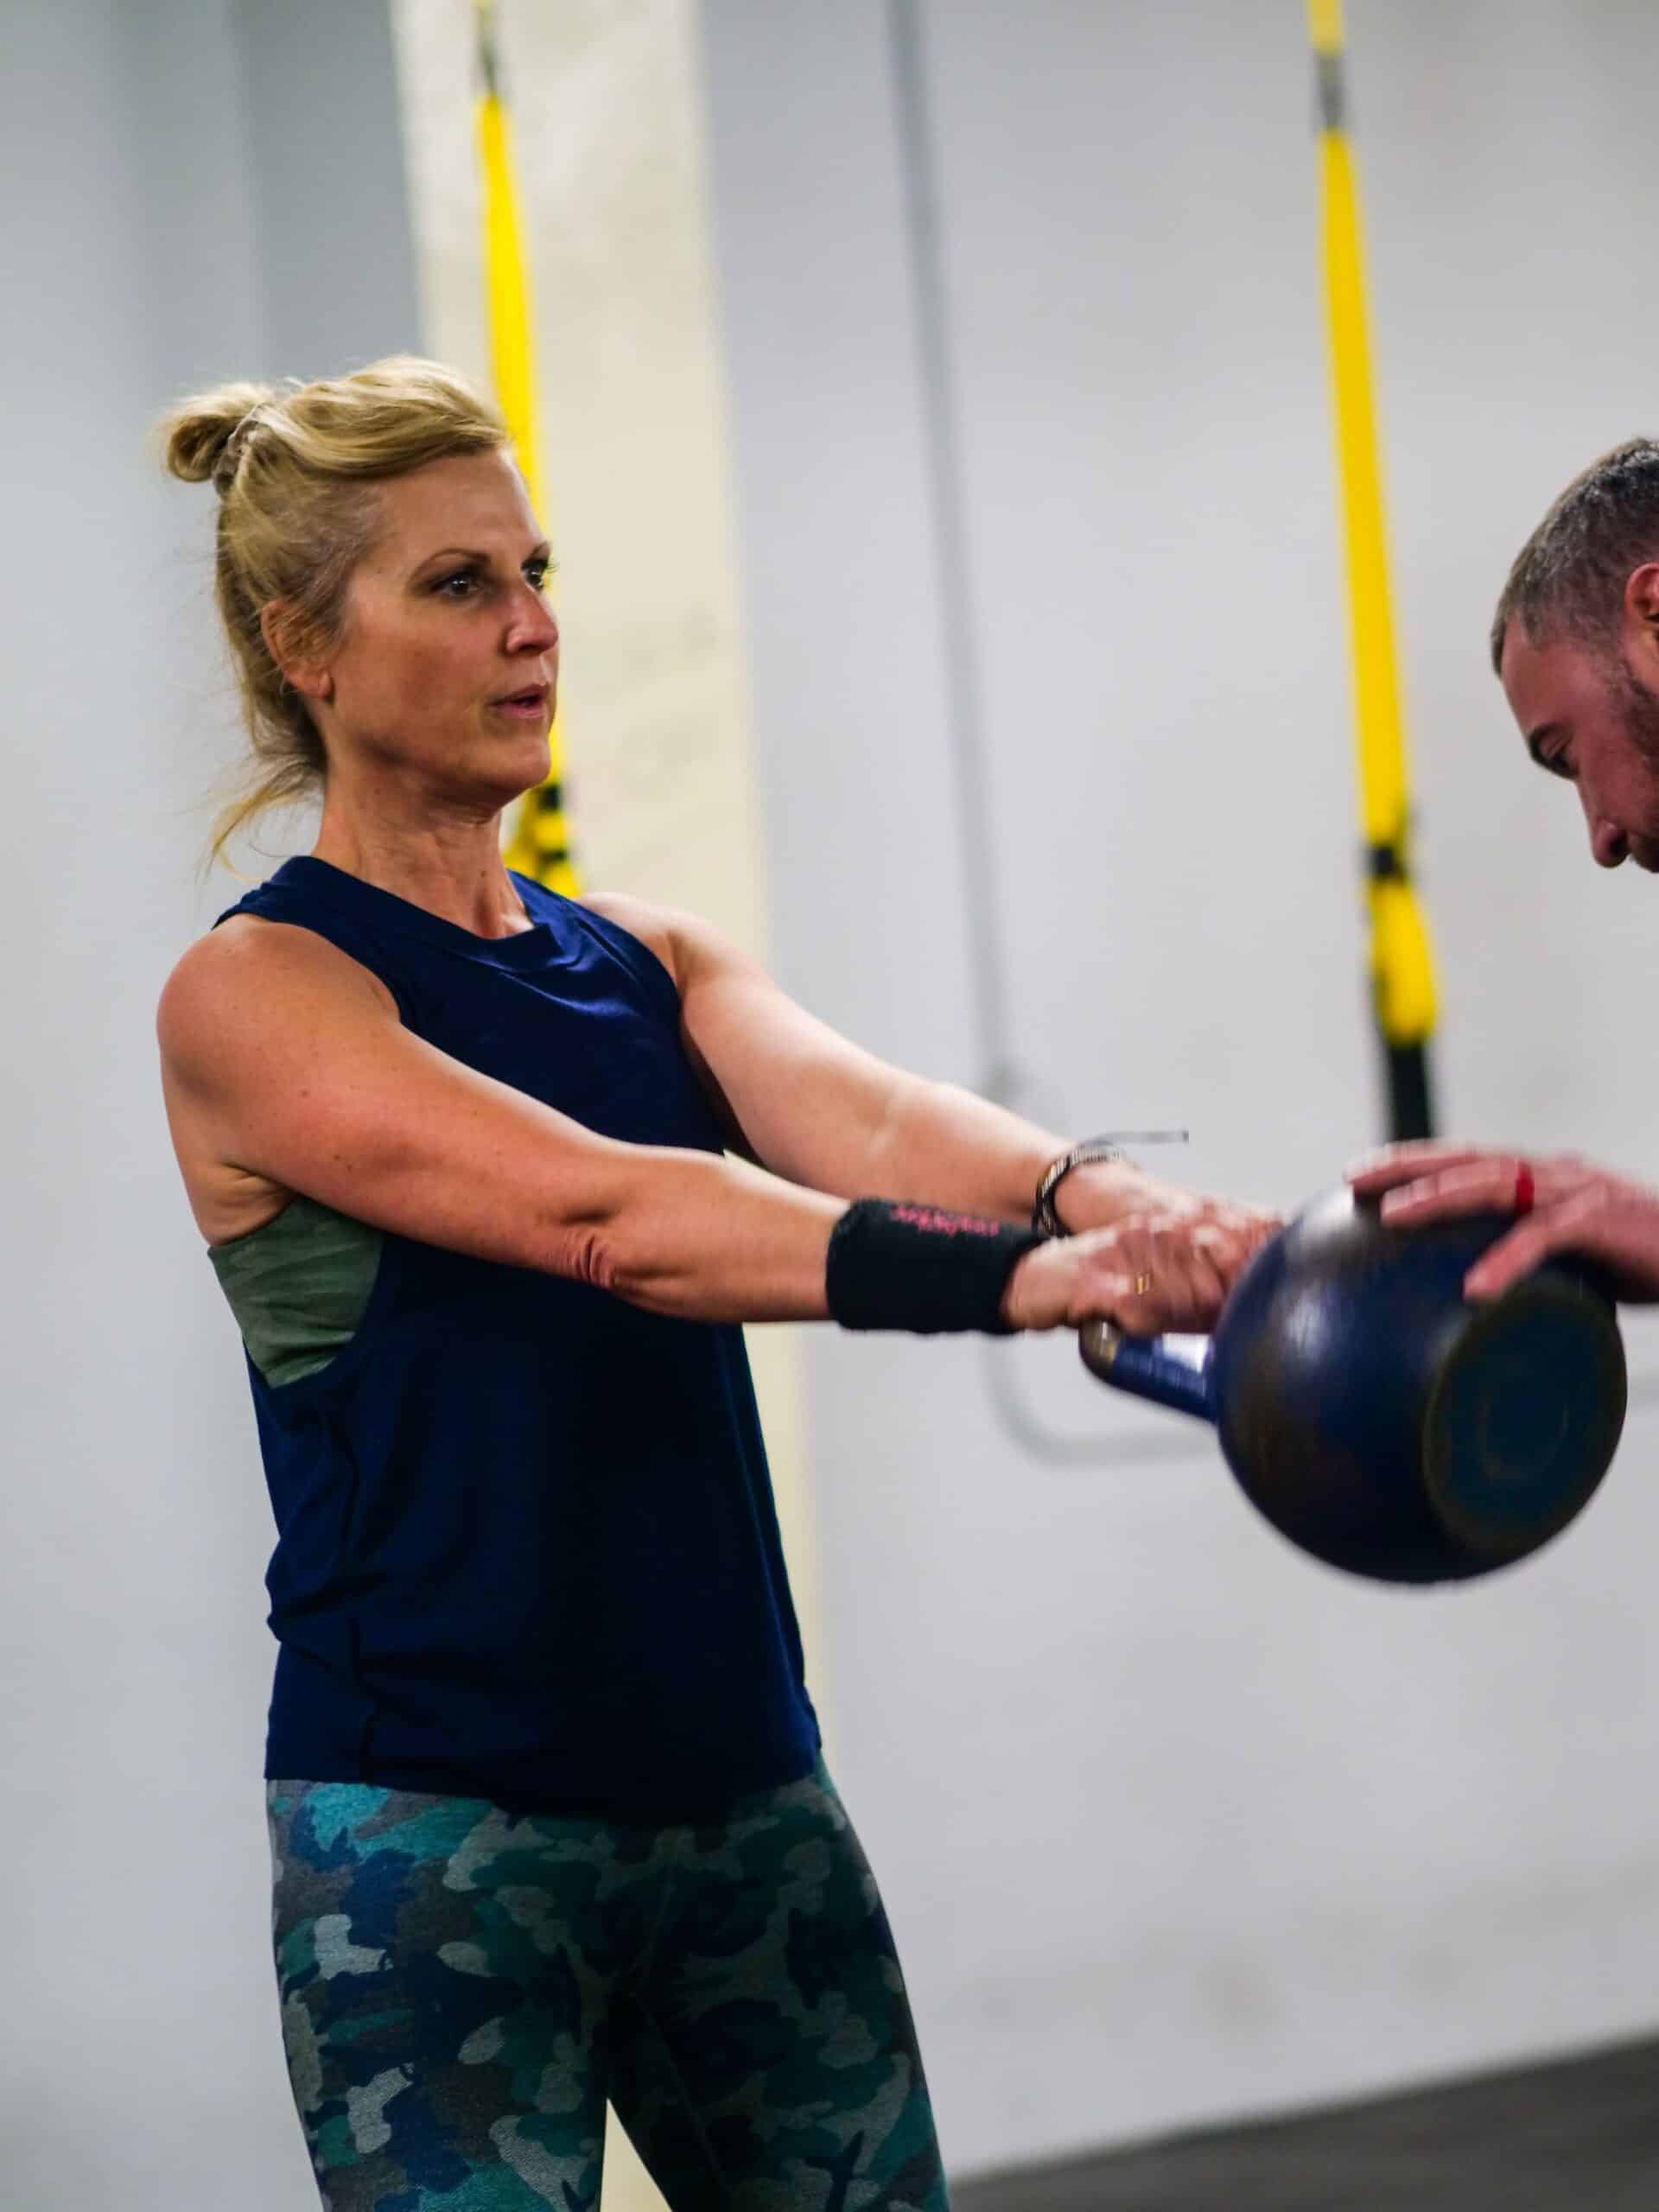 Spark Fitness team member training with a kettlebell